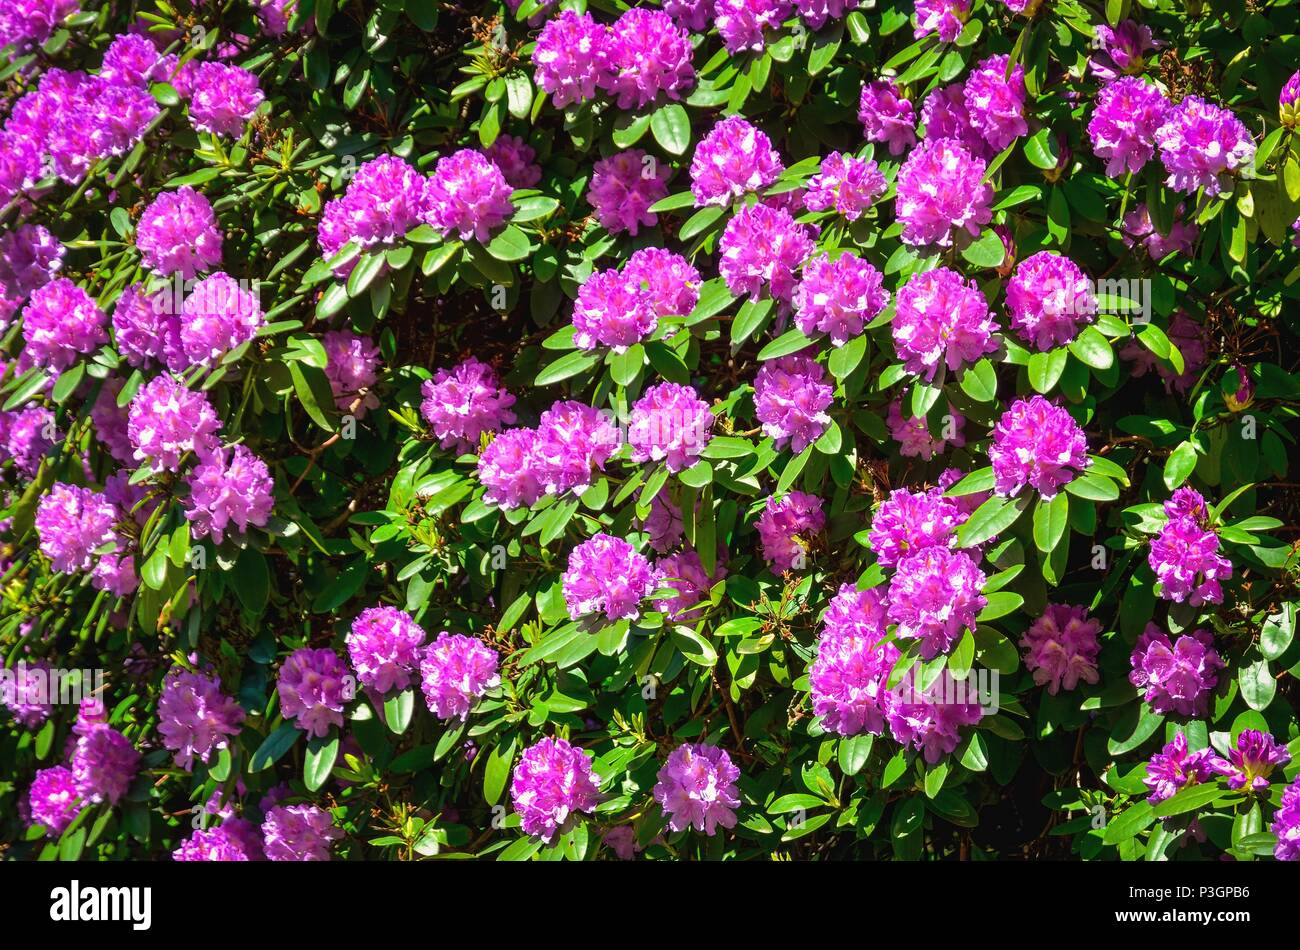 Spring natural background. Beautiful blooming rhododendrons in the park. - Stock Image